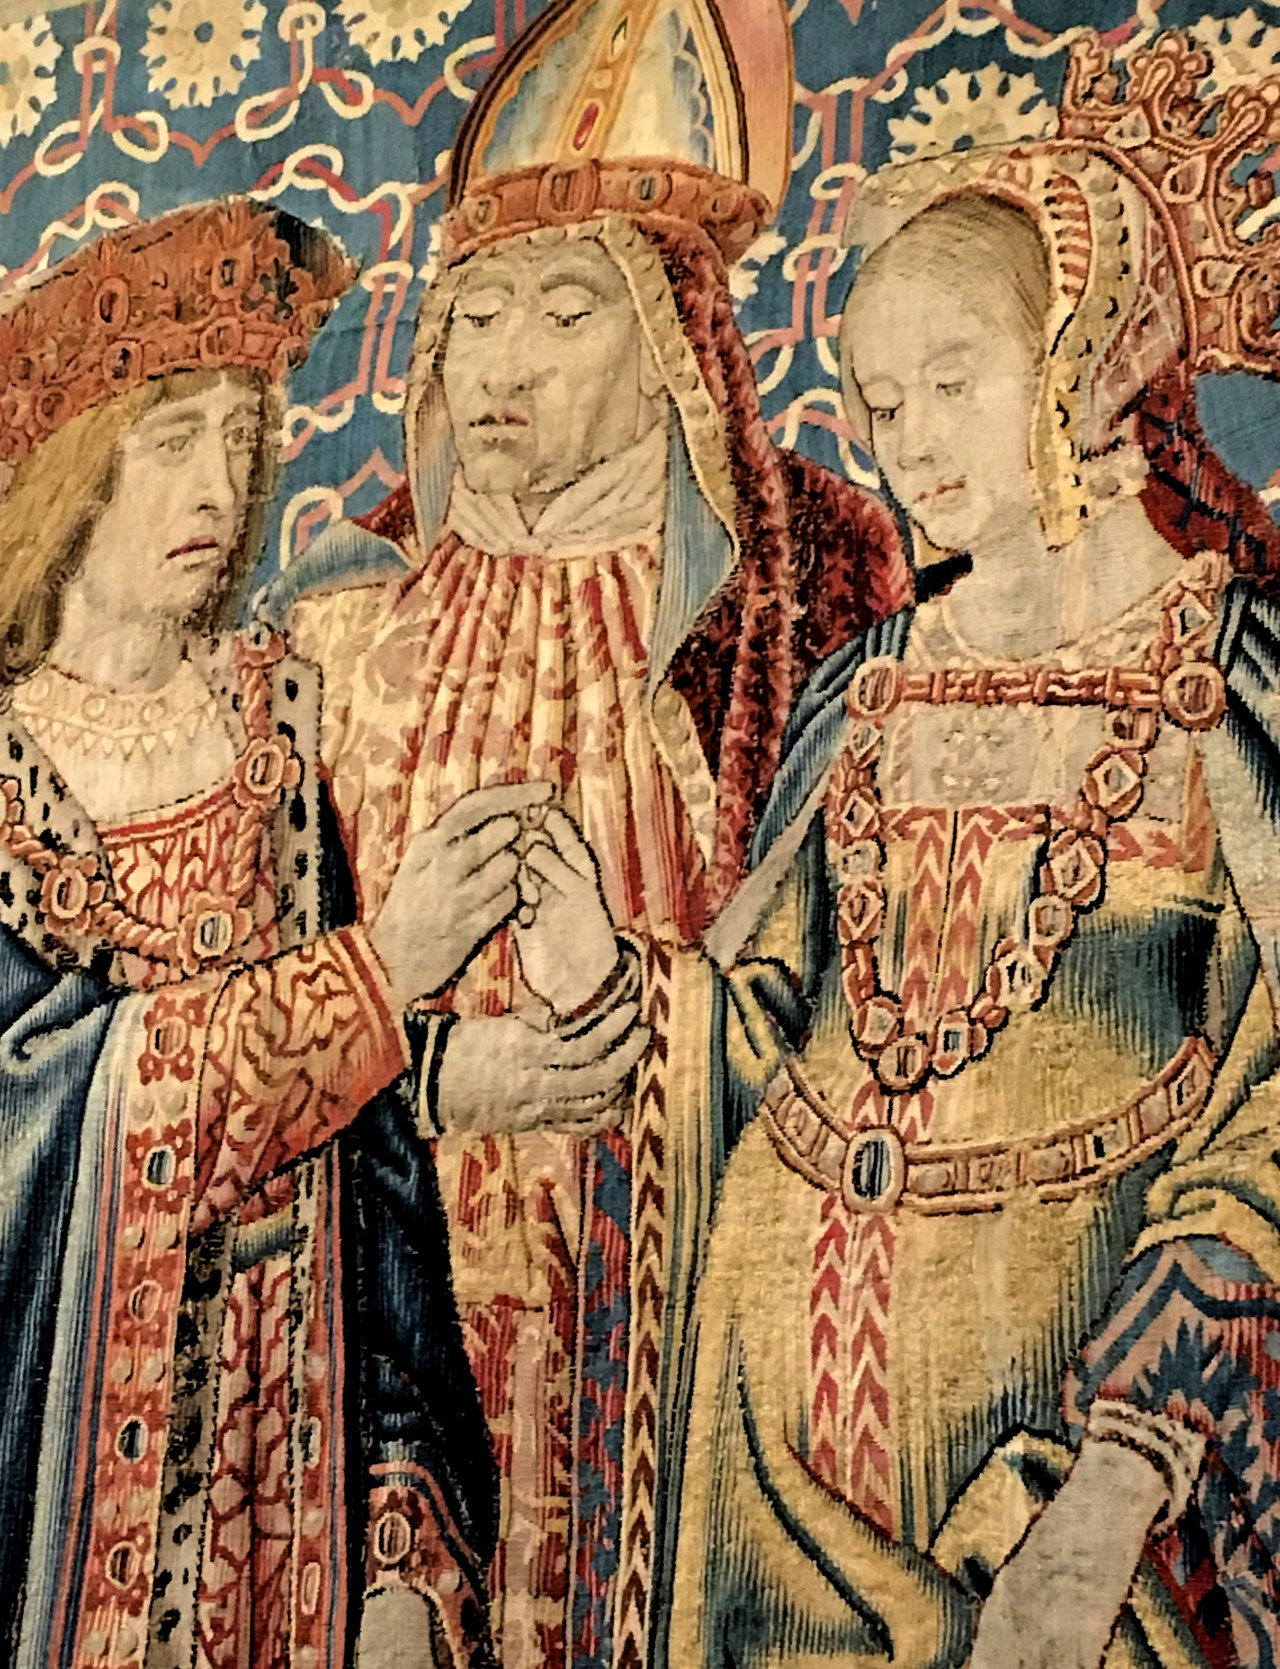 Louis XII and Mary Tudor marry